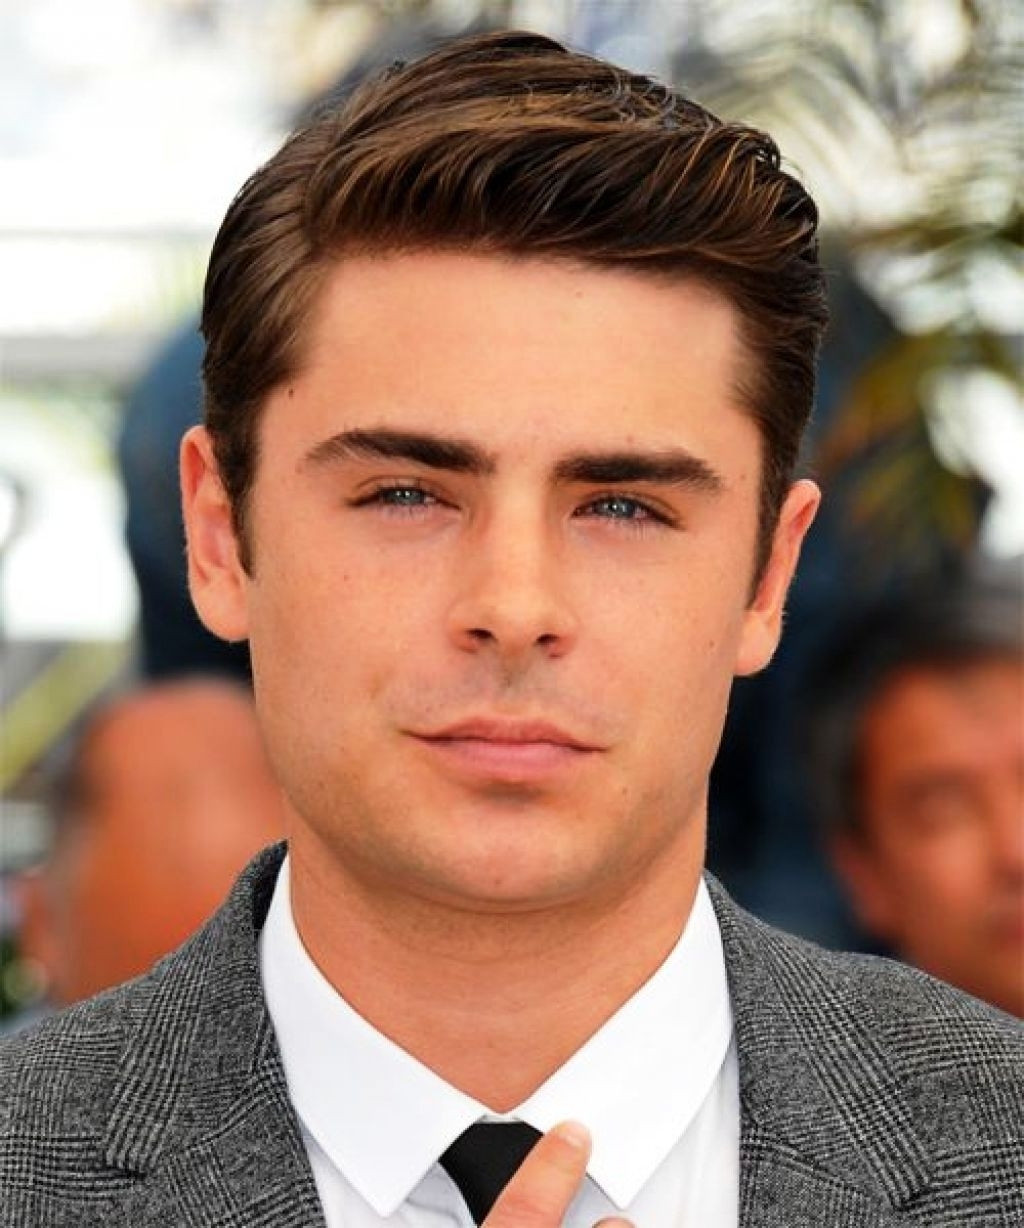 Best ideas about Mens Comb Over Haircuts . Save or Pin Mens Hairstyle b Over Now.